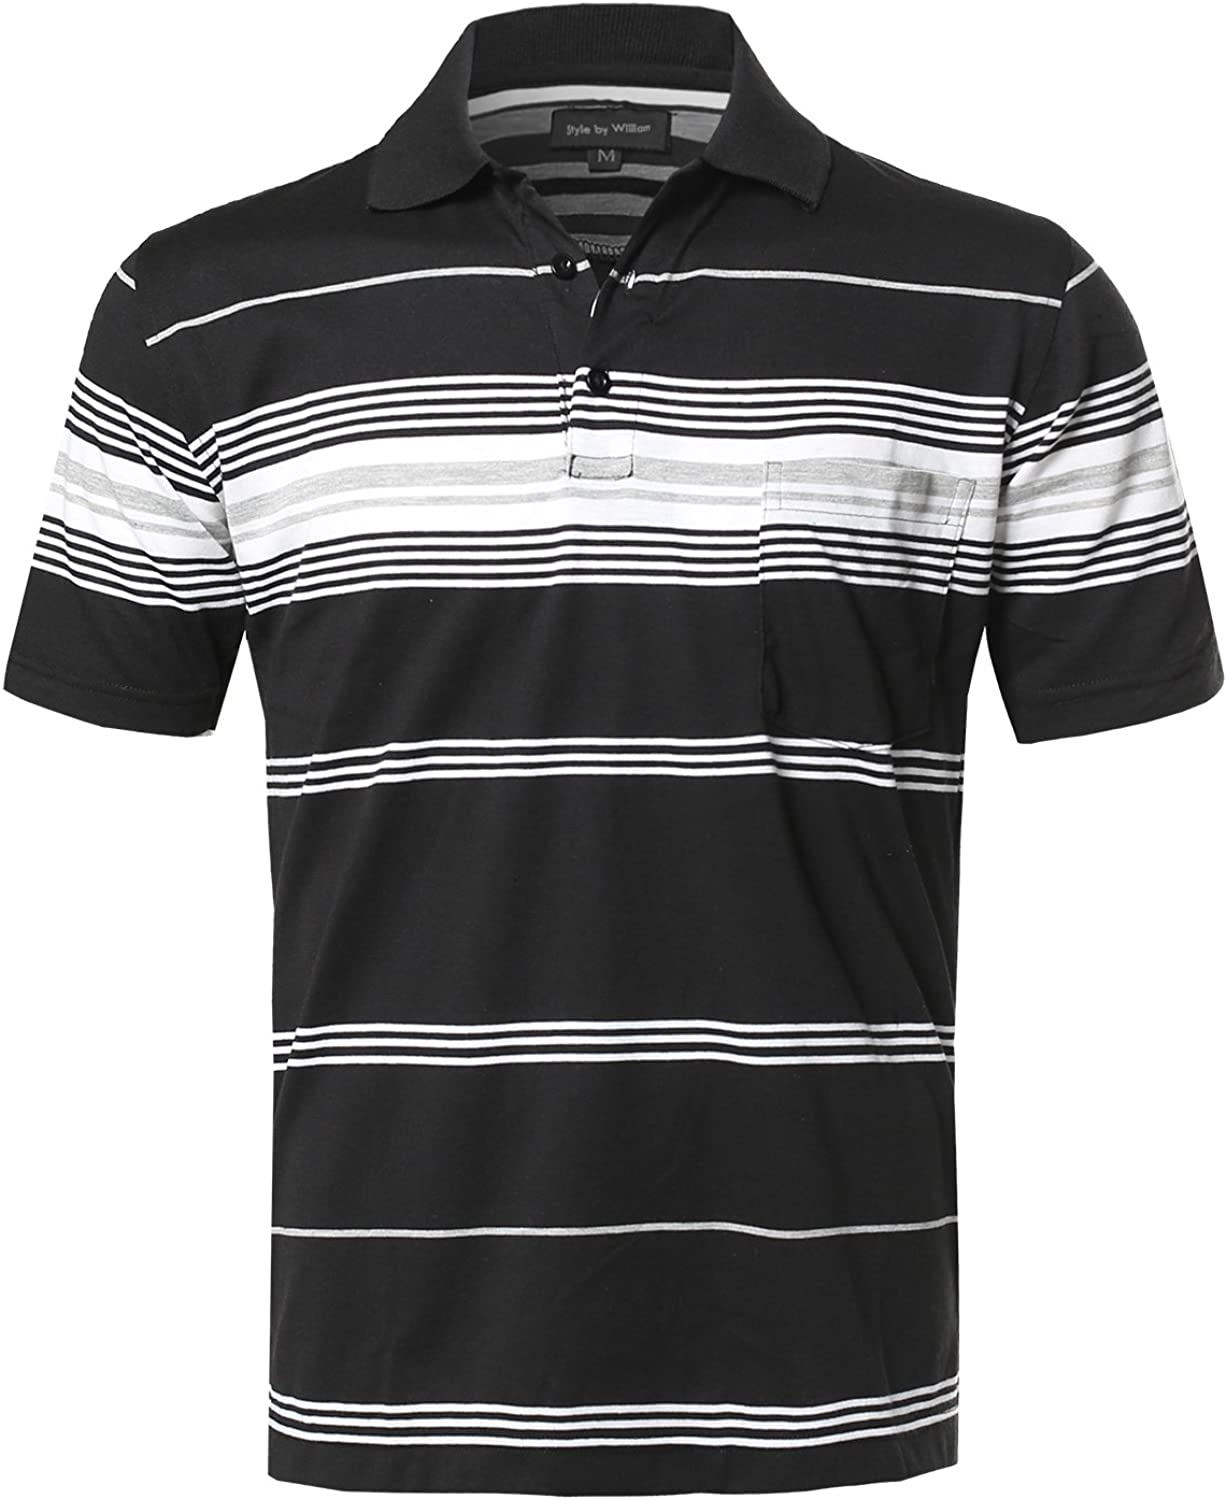 Style by William Mens Casual Striped Short Sleeves Three-Button Polo T-Shirt